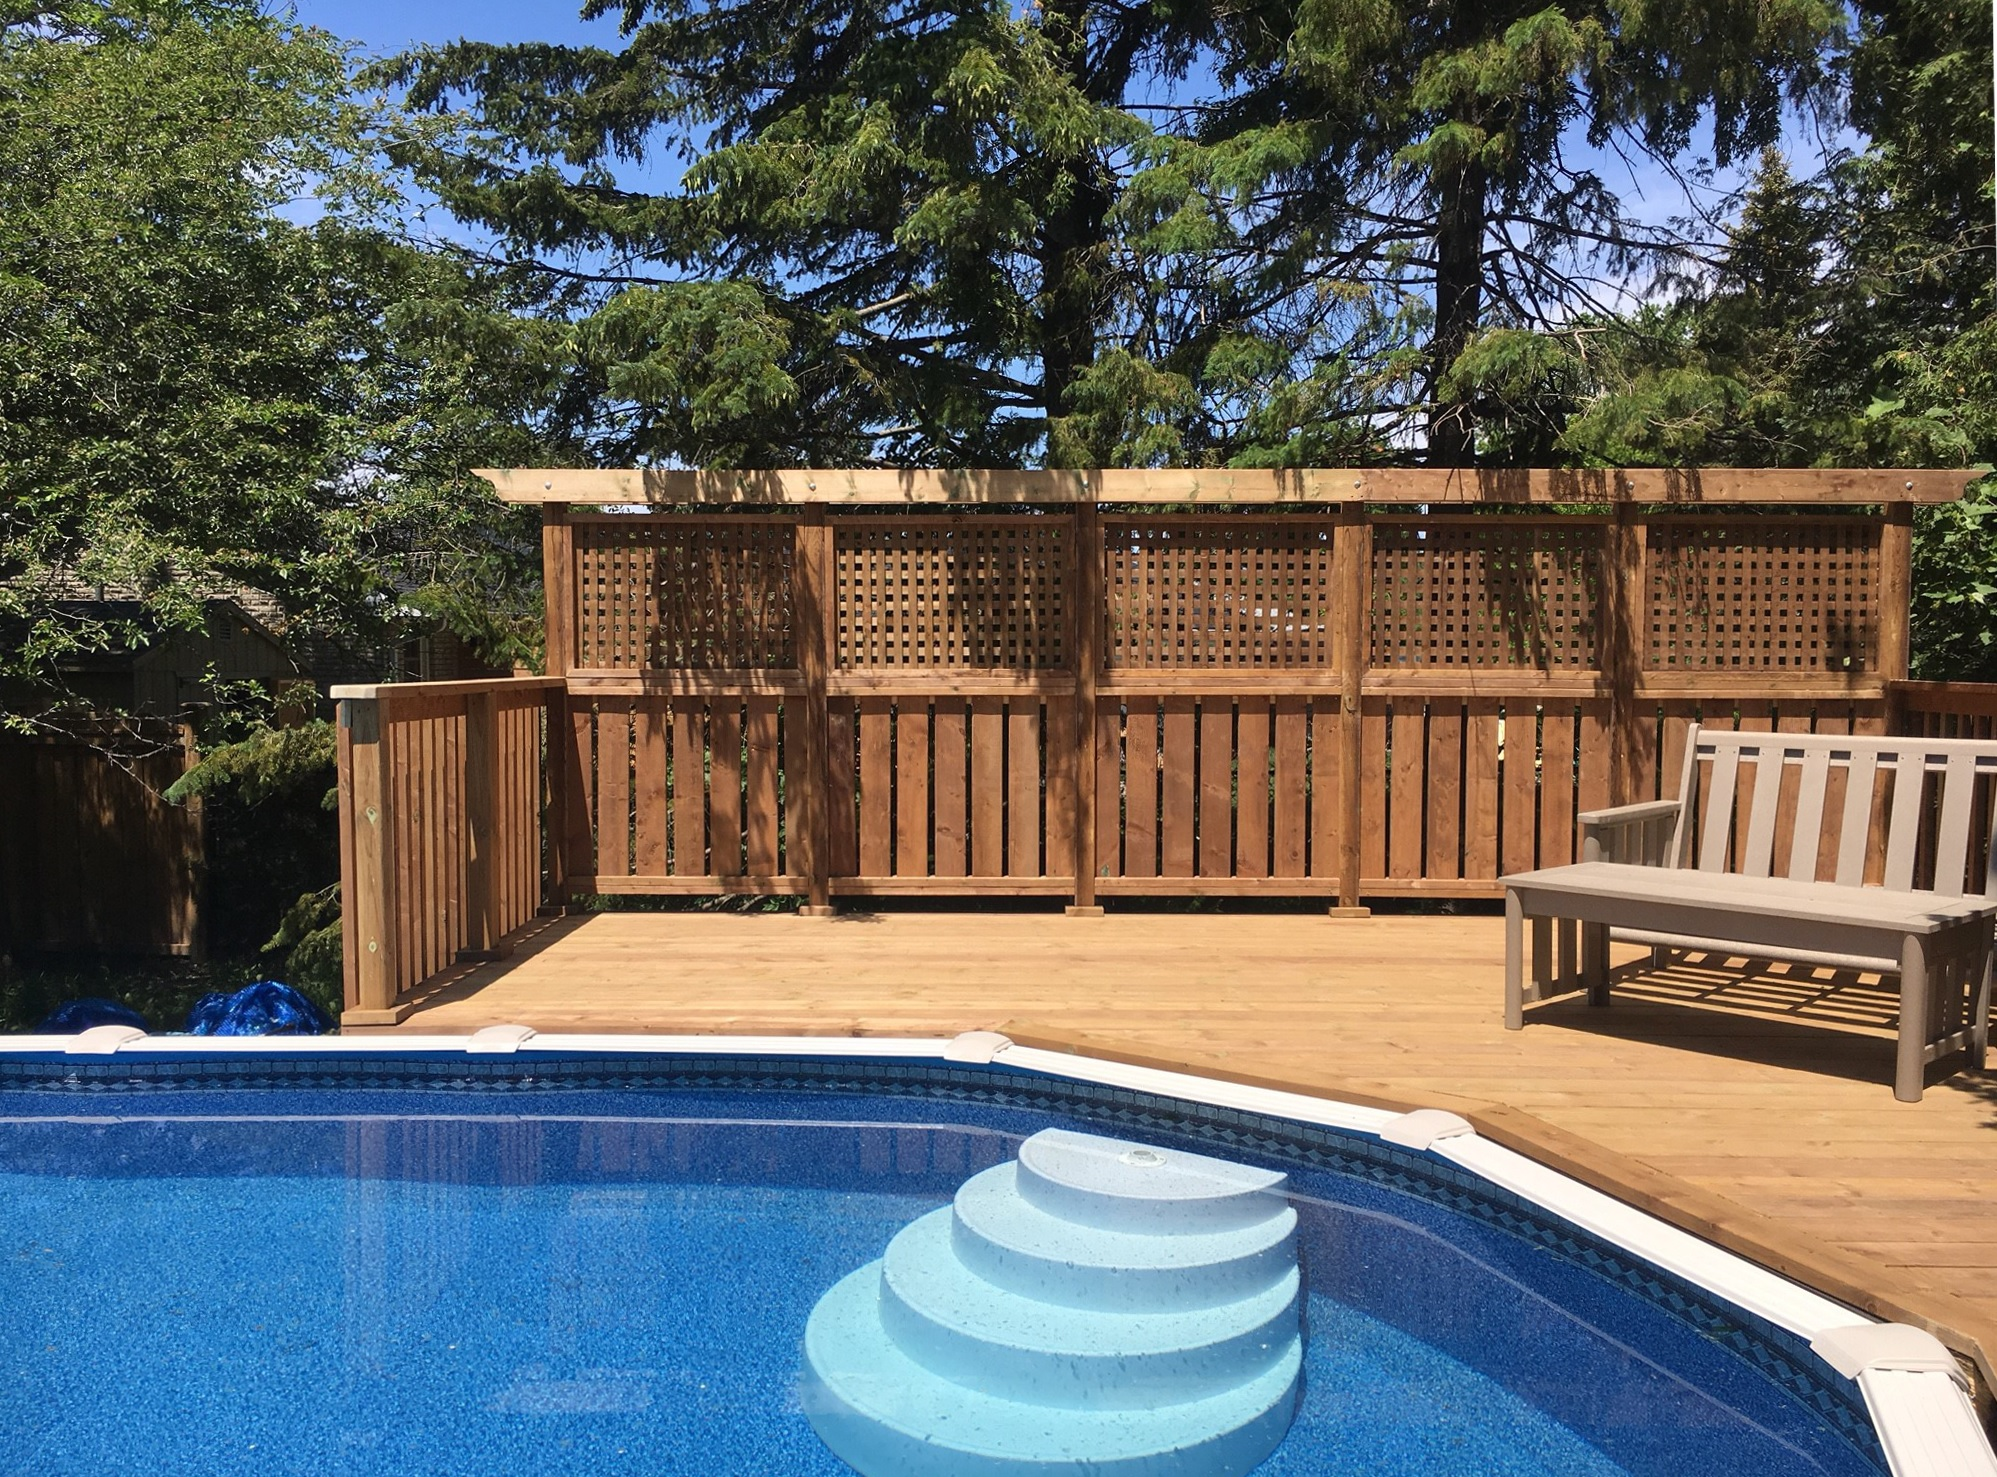 Keswick Pool Deck - After Construction Privacy Wall and Pool Edge